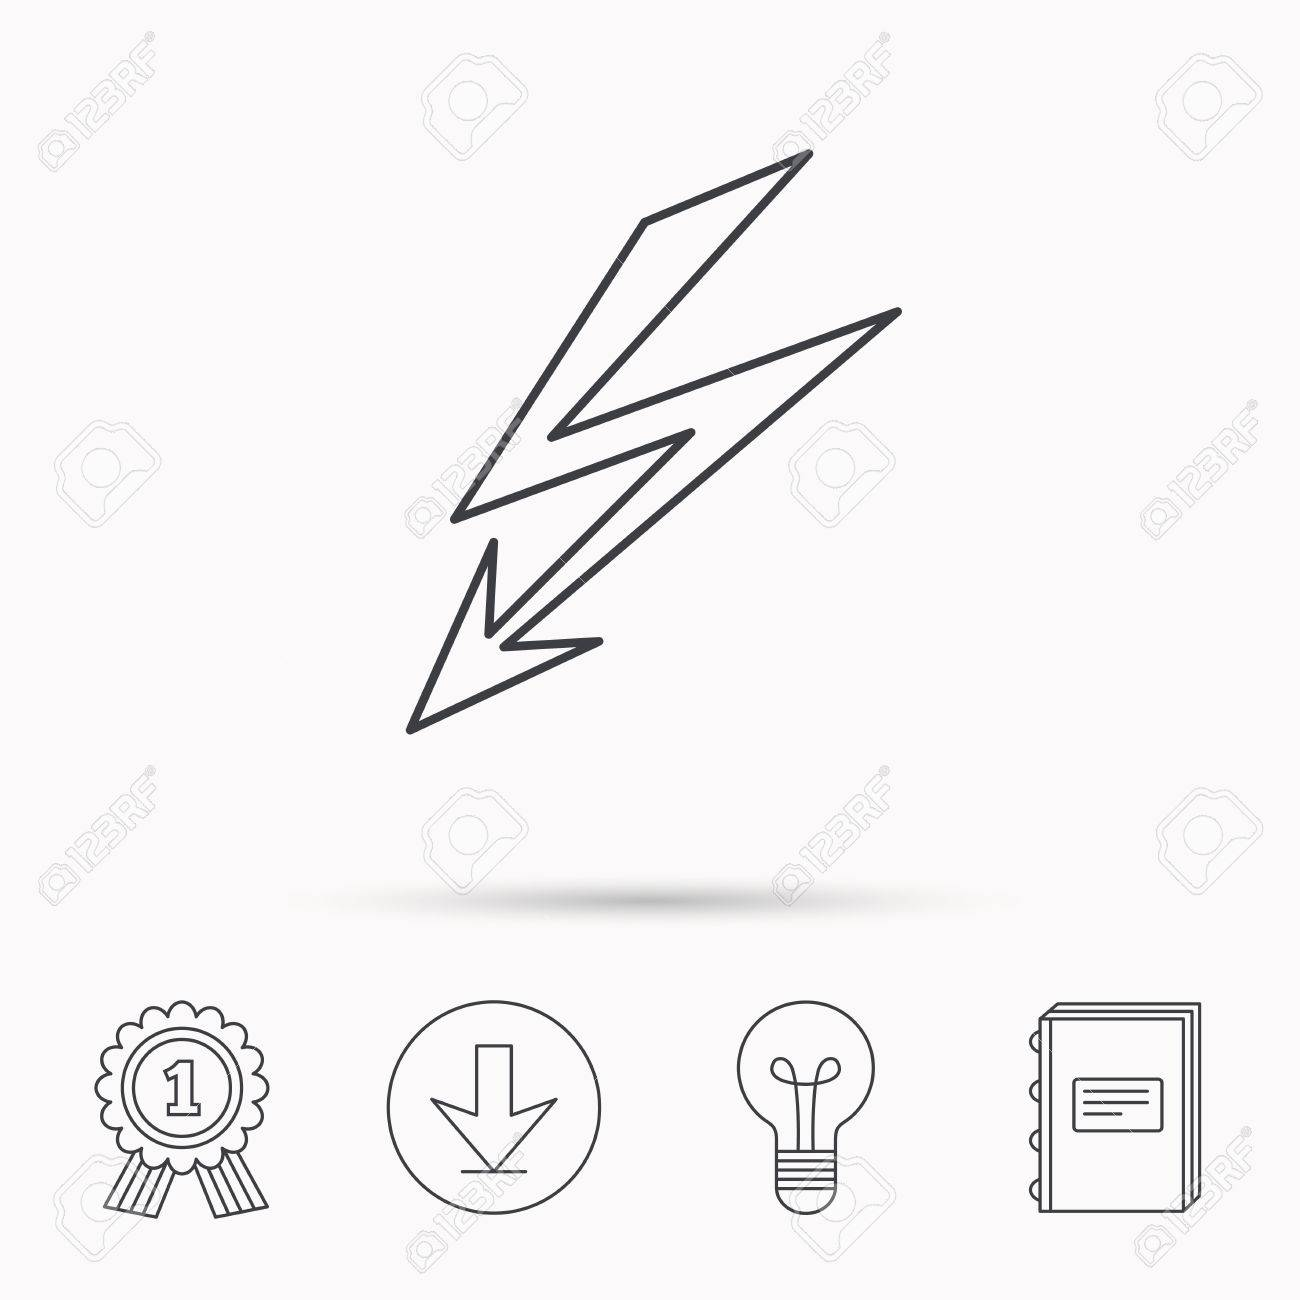 Lovely dc power supply symbol contemporary the best electrical dc power supply symbol dolgular biocorpaavc Gallery